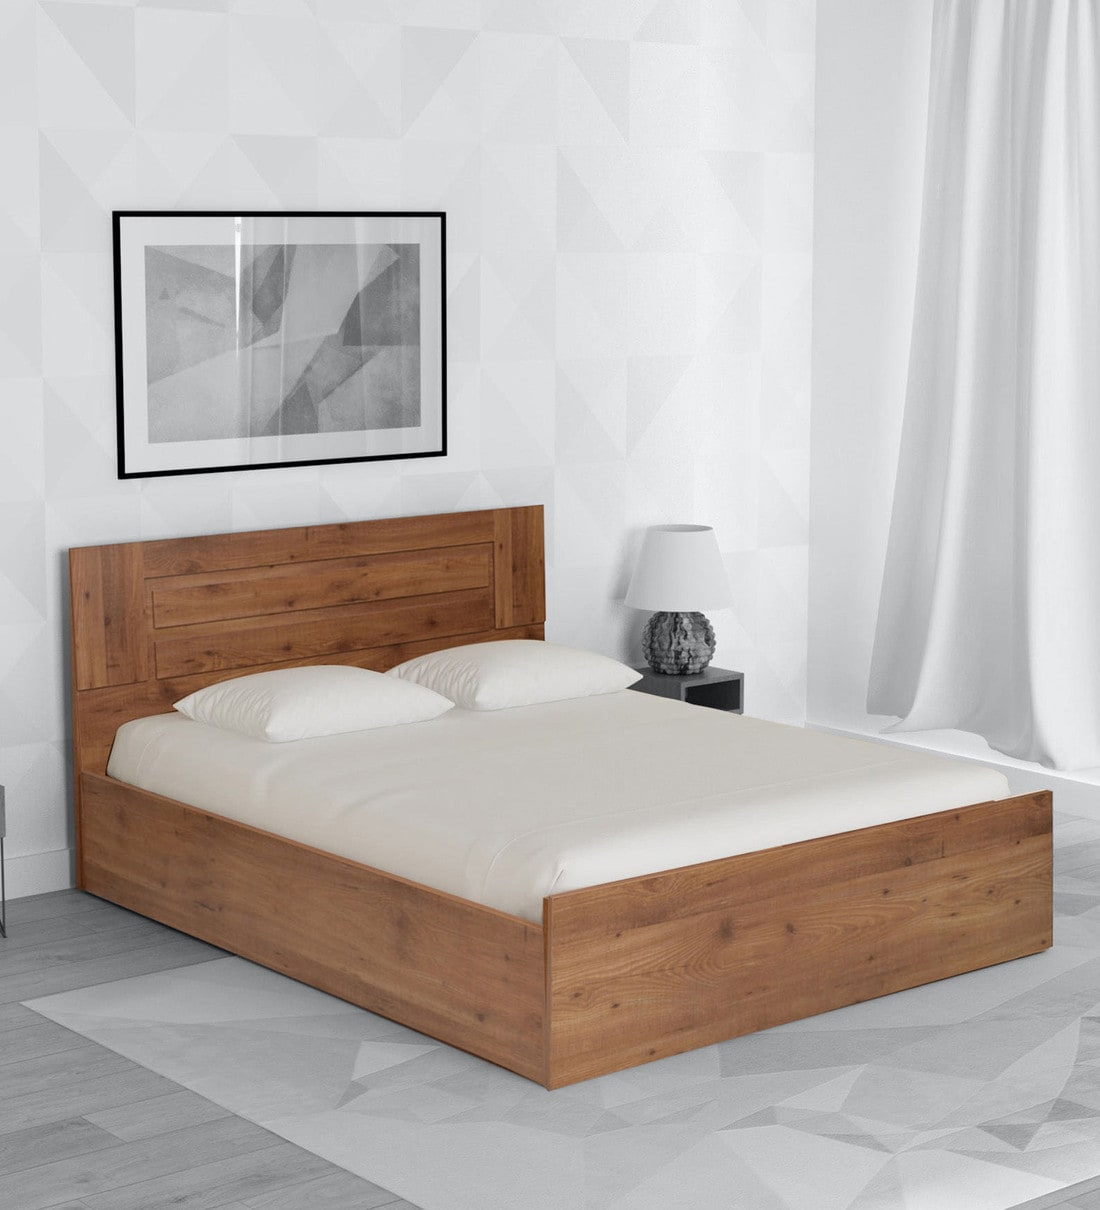 Buy Platina Knotty King Size Bed With Storage In Knotty Wood Teak Finish By Crystal Furnitech Online Modern King Size Beds Beds Furniture Pepperfry Product